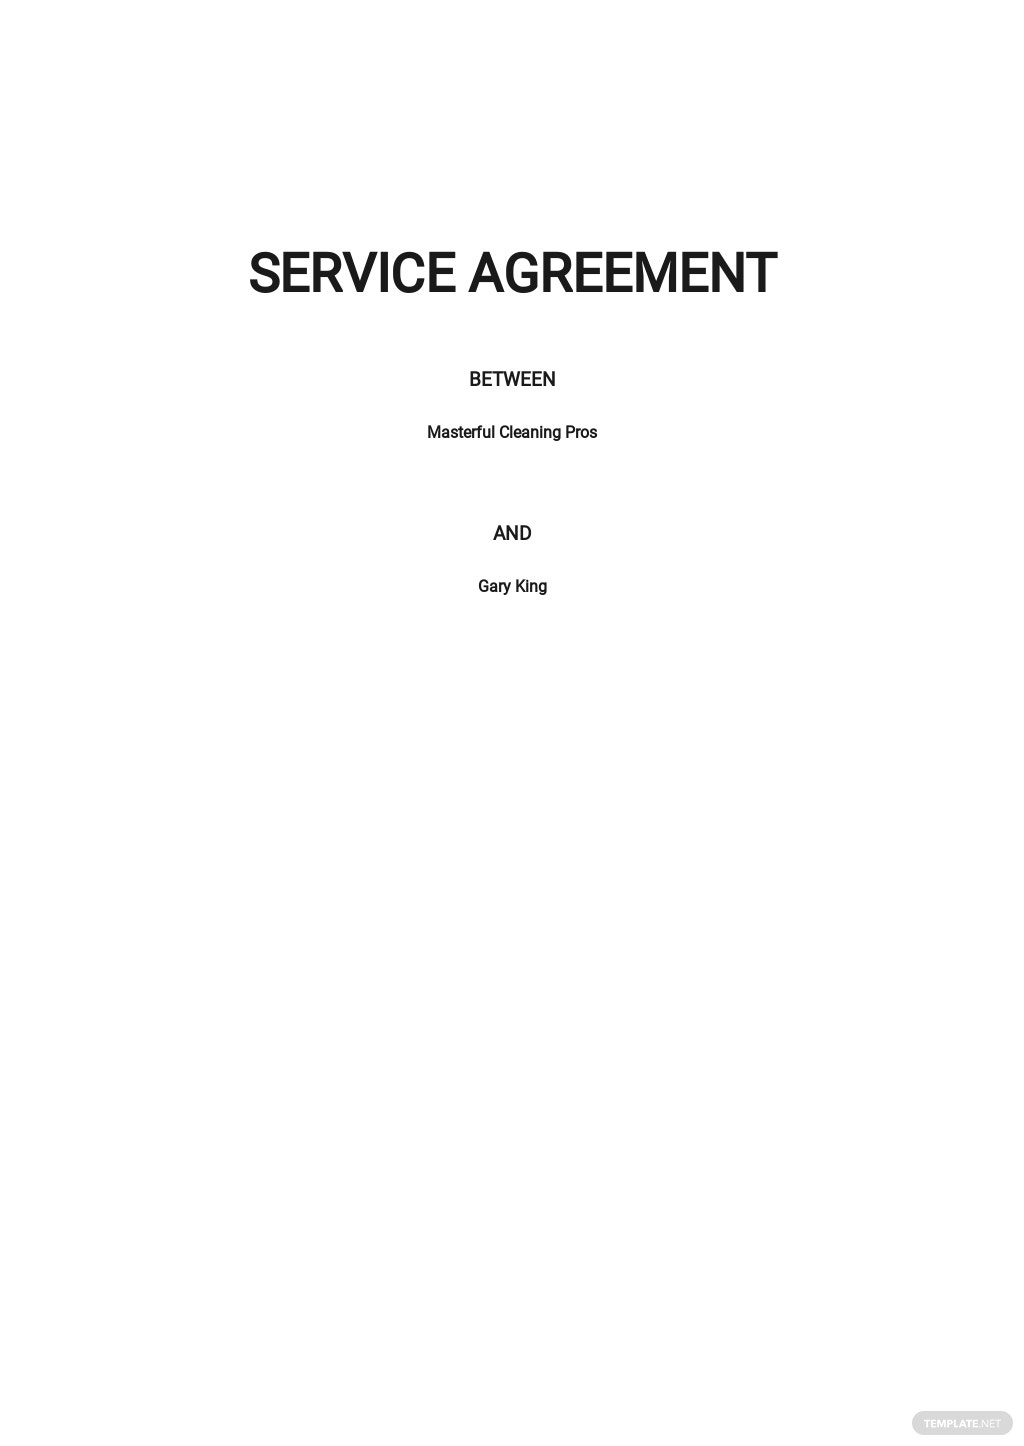 Cleaning Company Service Agreement Template.jpe